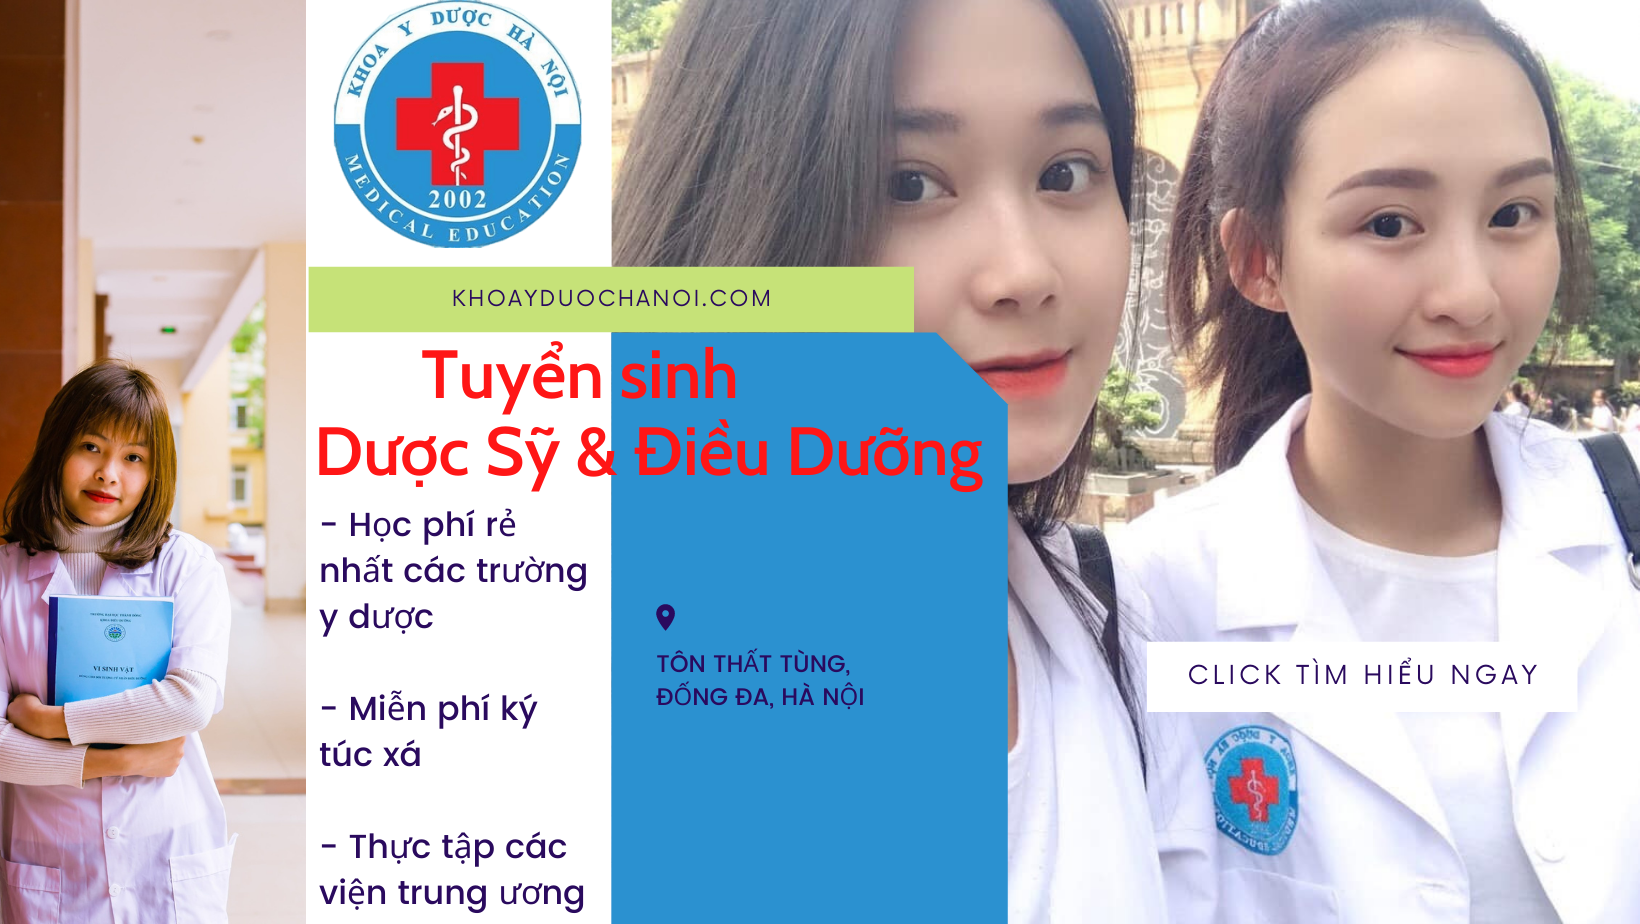 https://tintuctuyensinh.vn/wp-content/uploads/2021/06/Modern-Corporate-Business-Facebook-Cover-1.png